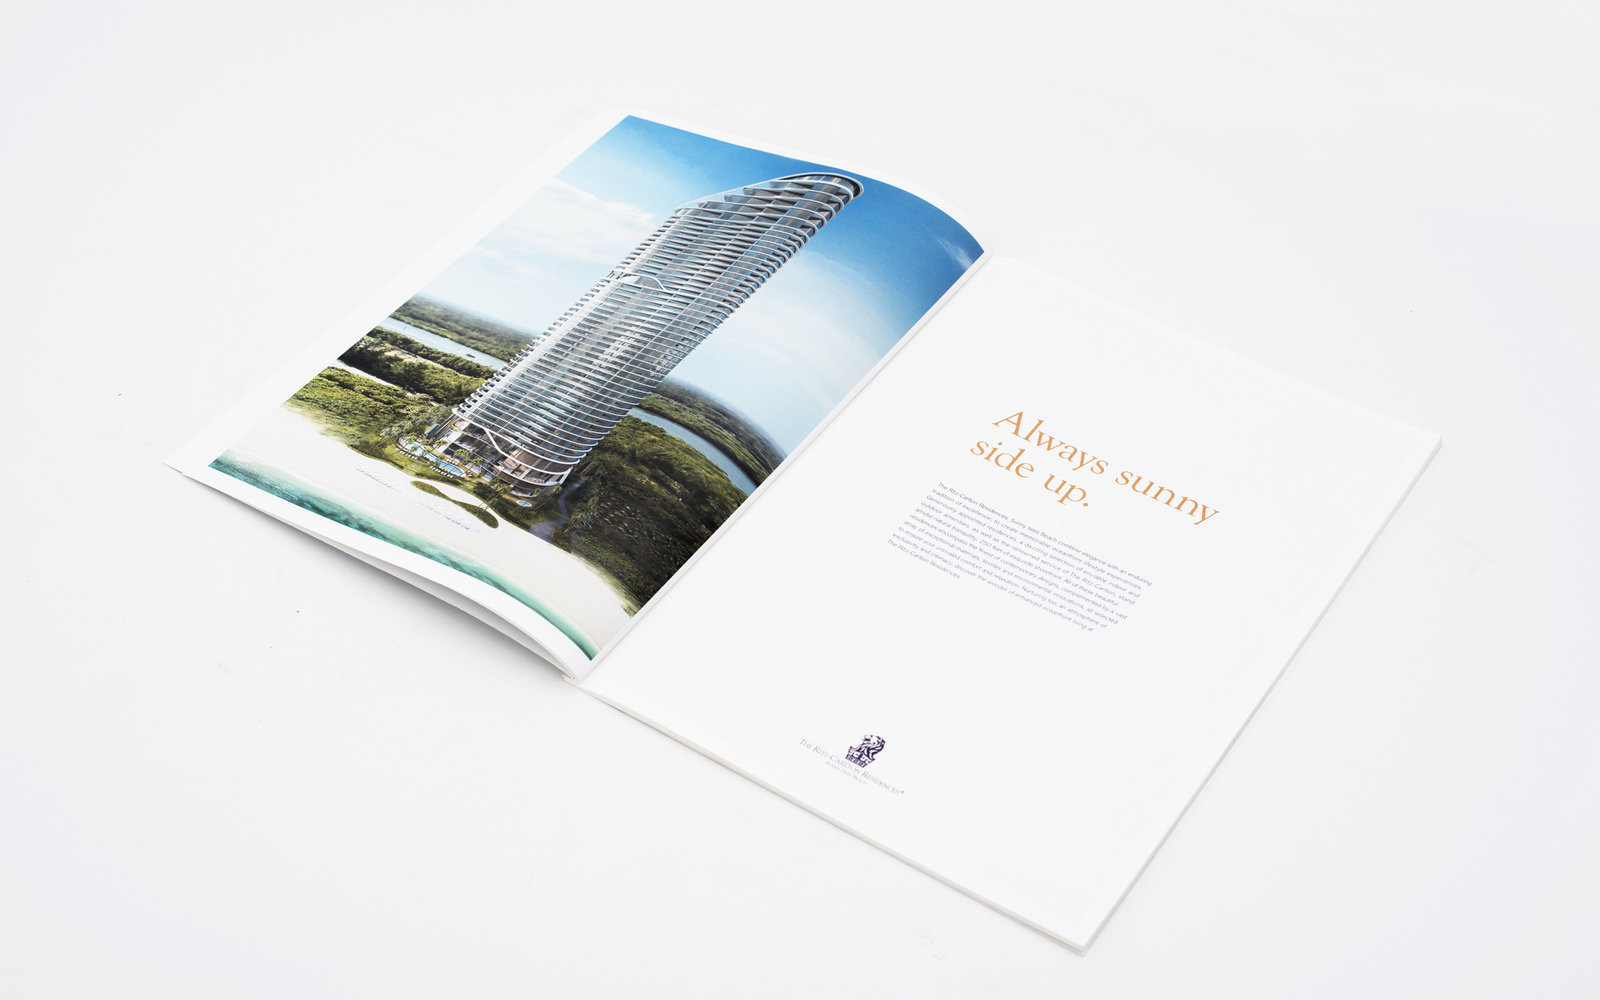 Watson and company ritz carlton brochure spread 02 1600 0x39x2100x1312 q85